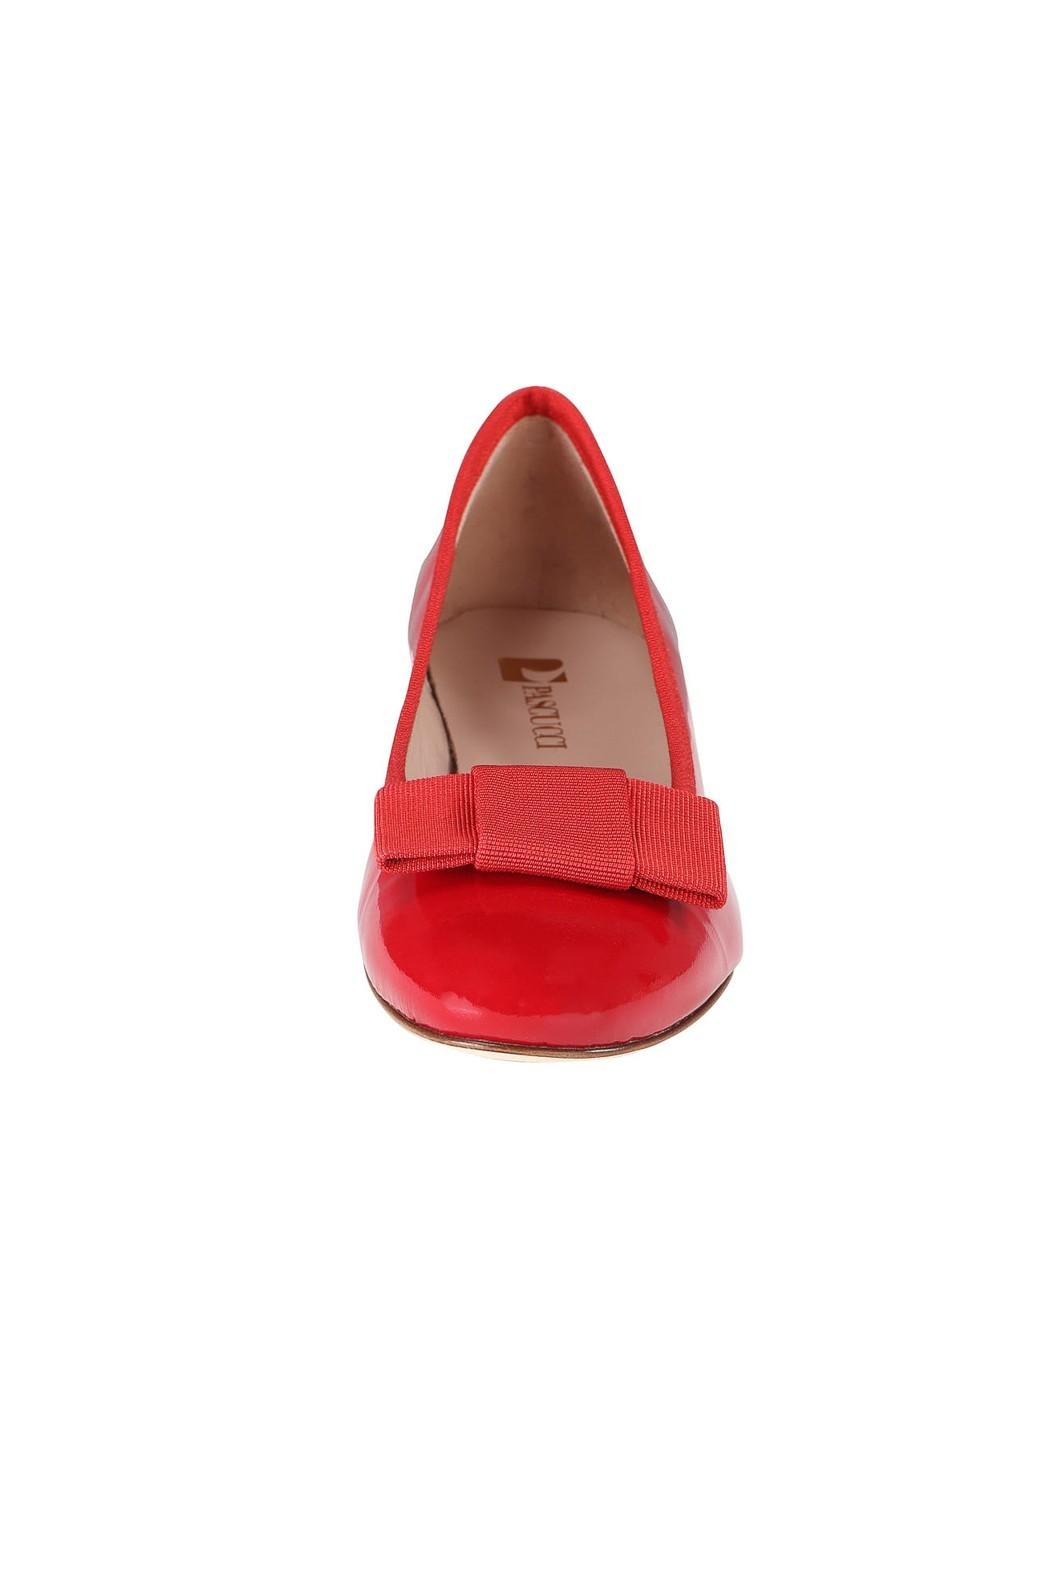 Pascucci Patent Heeled Ballet-Flats - Side Cropped Image